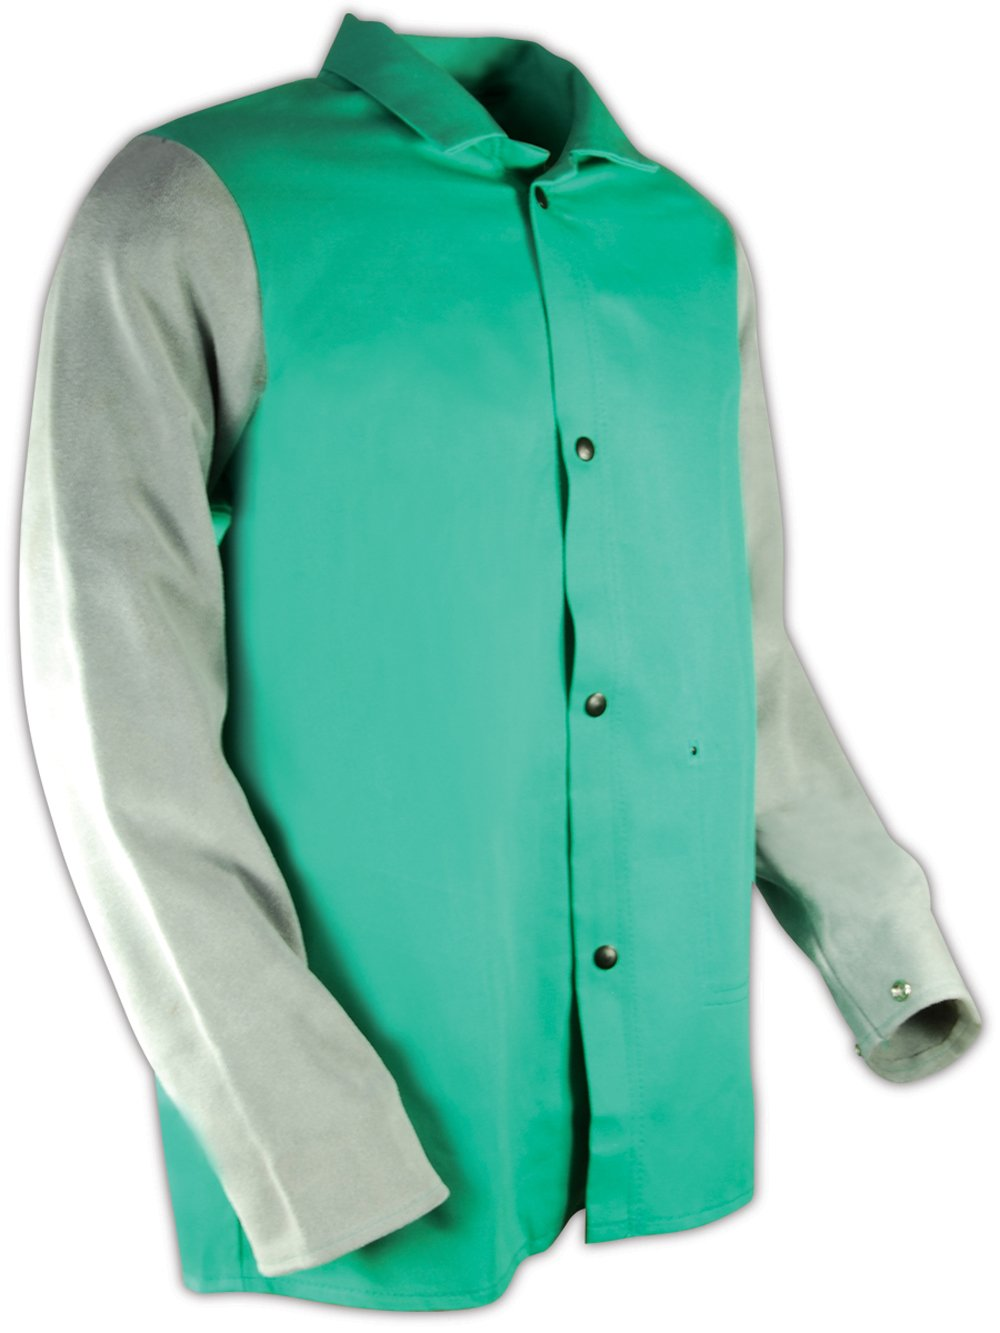 """Magid 1830LSXL SparkGuard Flame Resistant Cotton Standard Weight Jacket with Grey Leather Sleeves, 30"""" Length, XL, Green"""